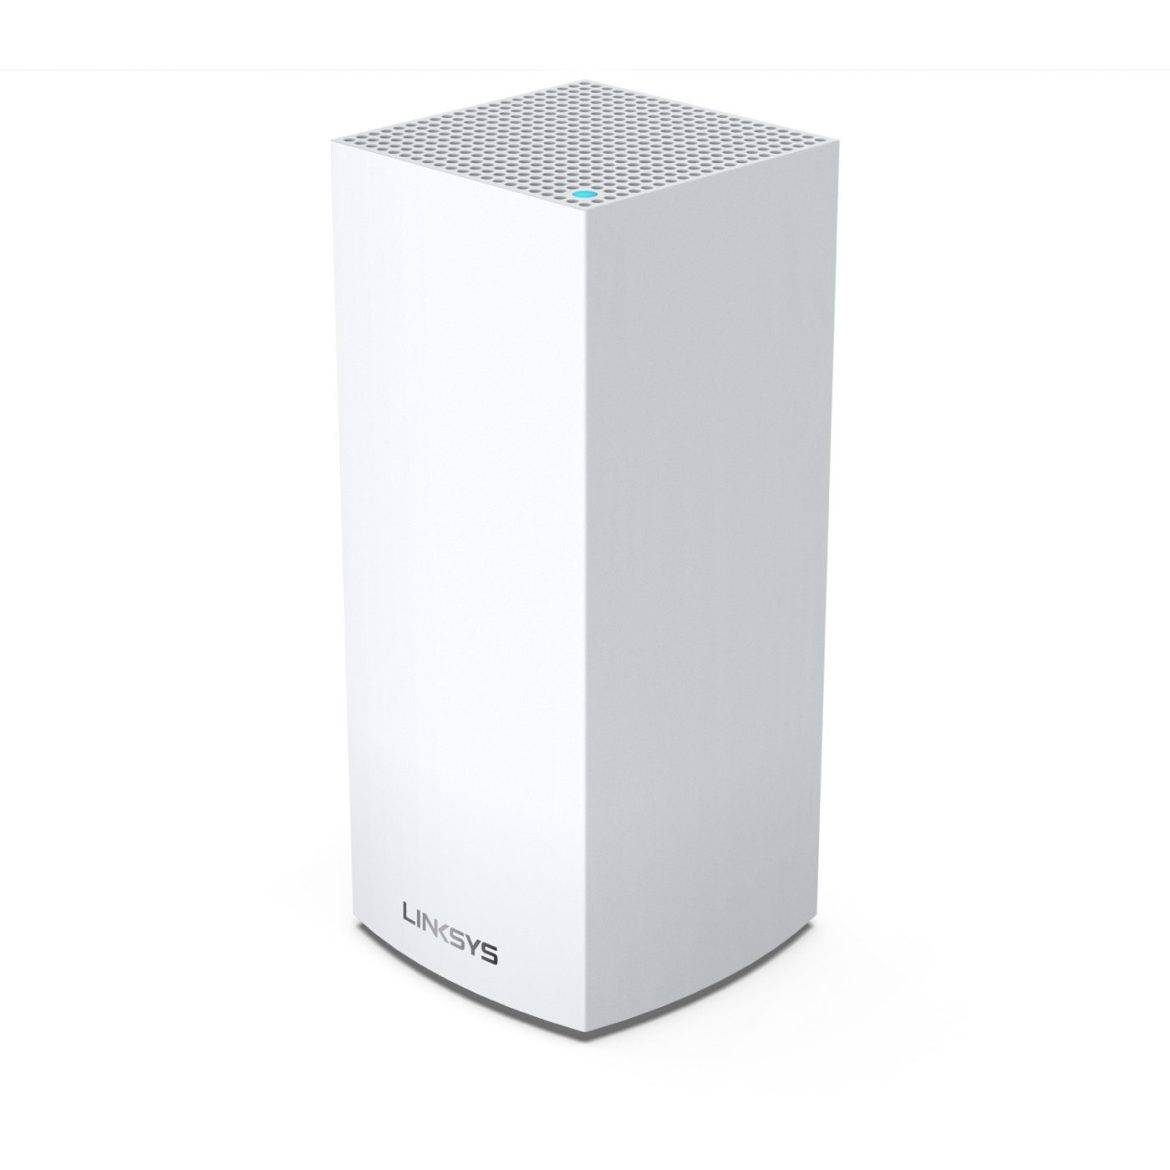 The Linksys Velop is turning your WiFi up to 6